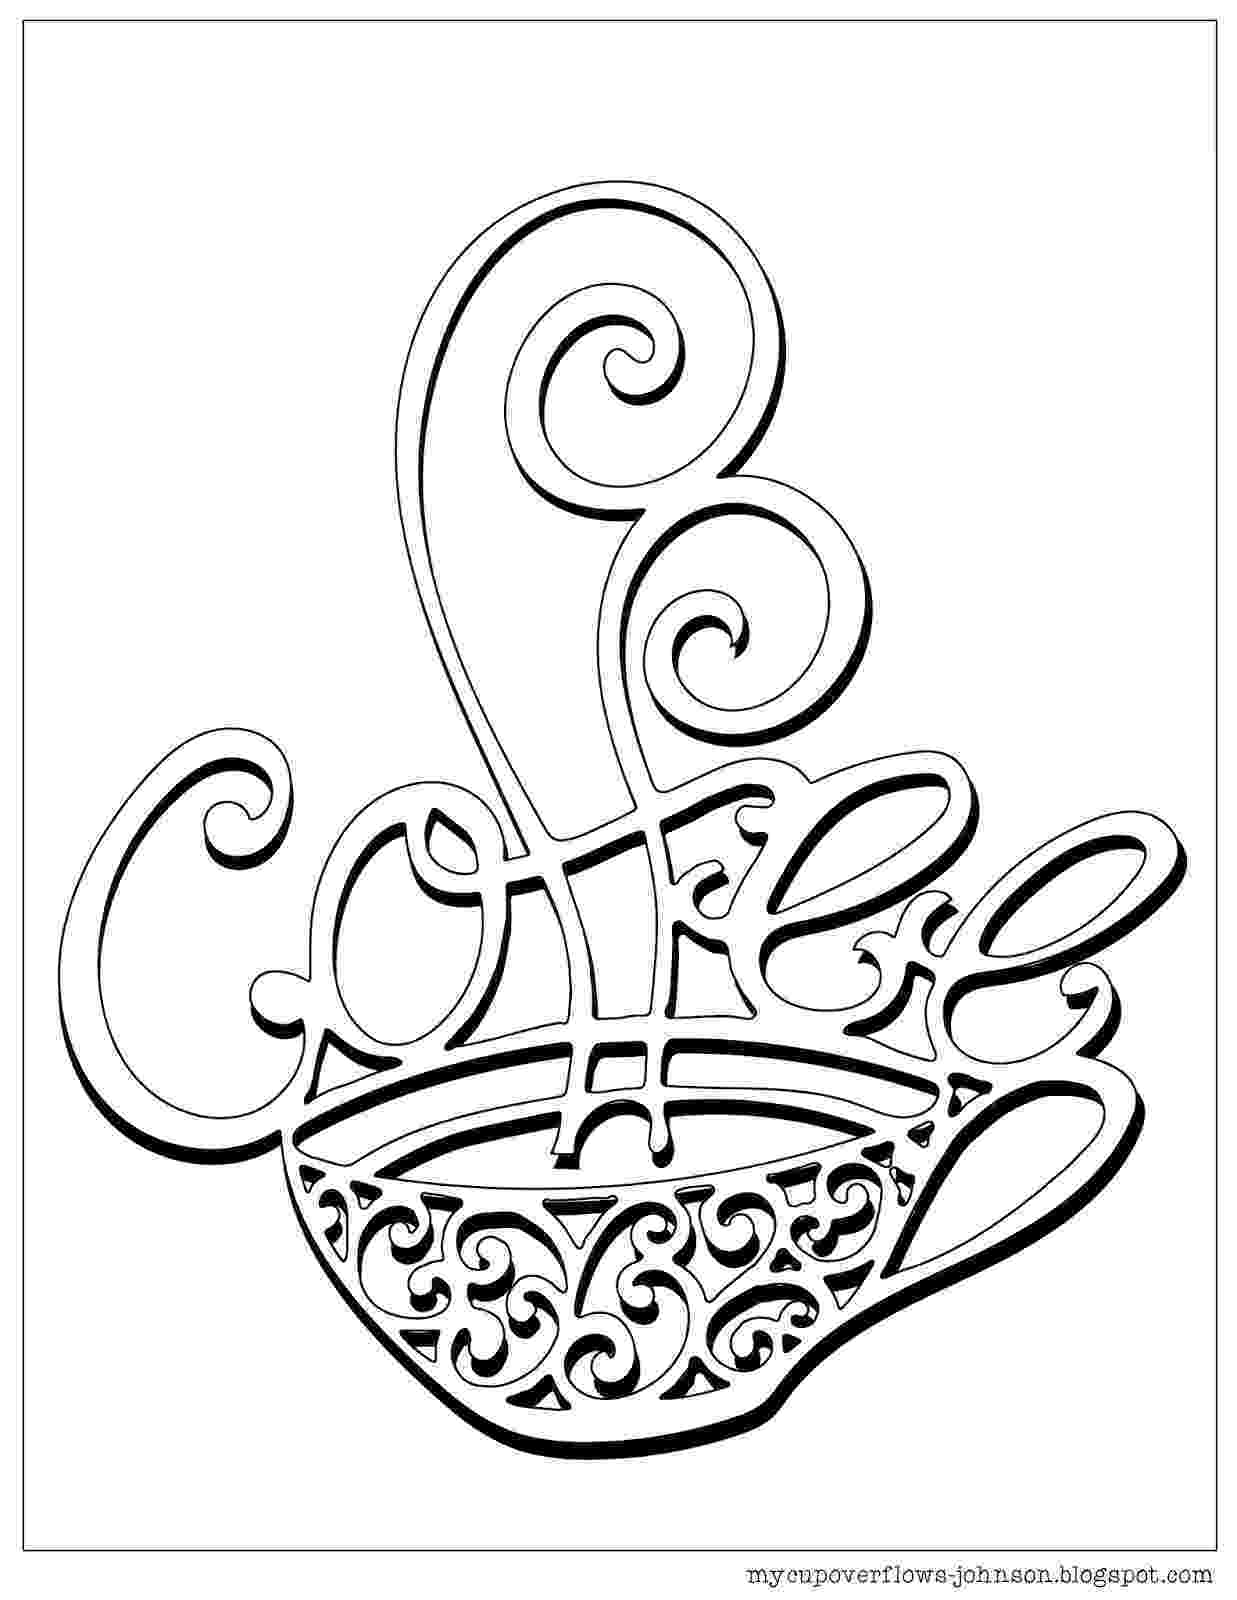 coffee cup coloring pages coffee mug free coloring pages for cup page 7943 coffee coffee coloring cup pages